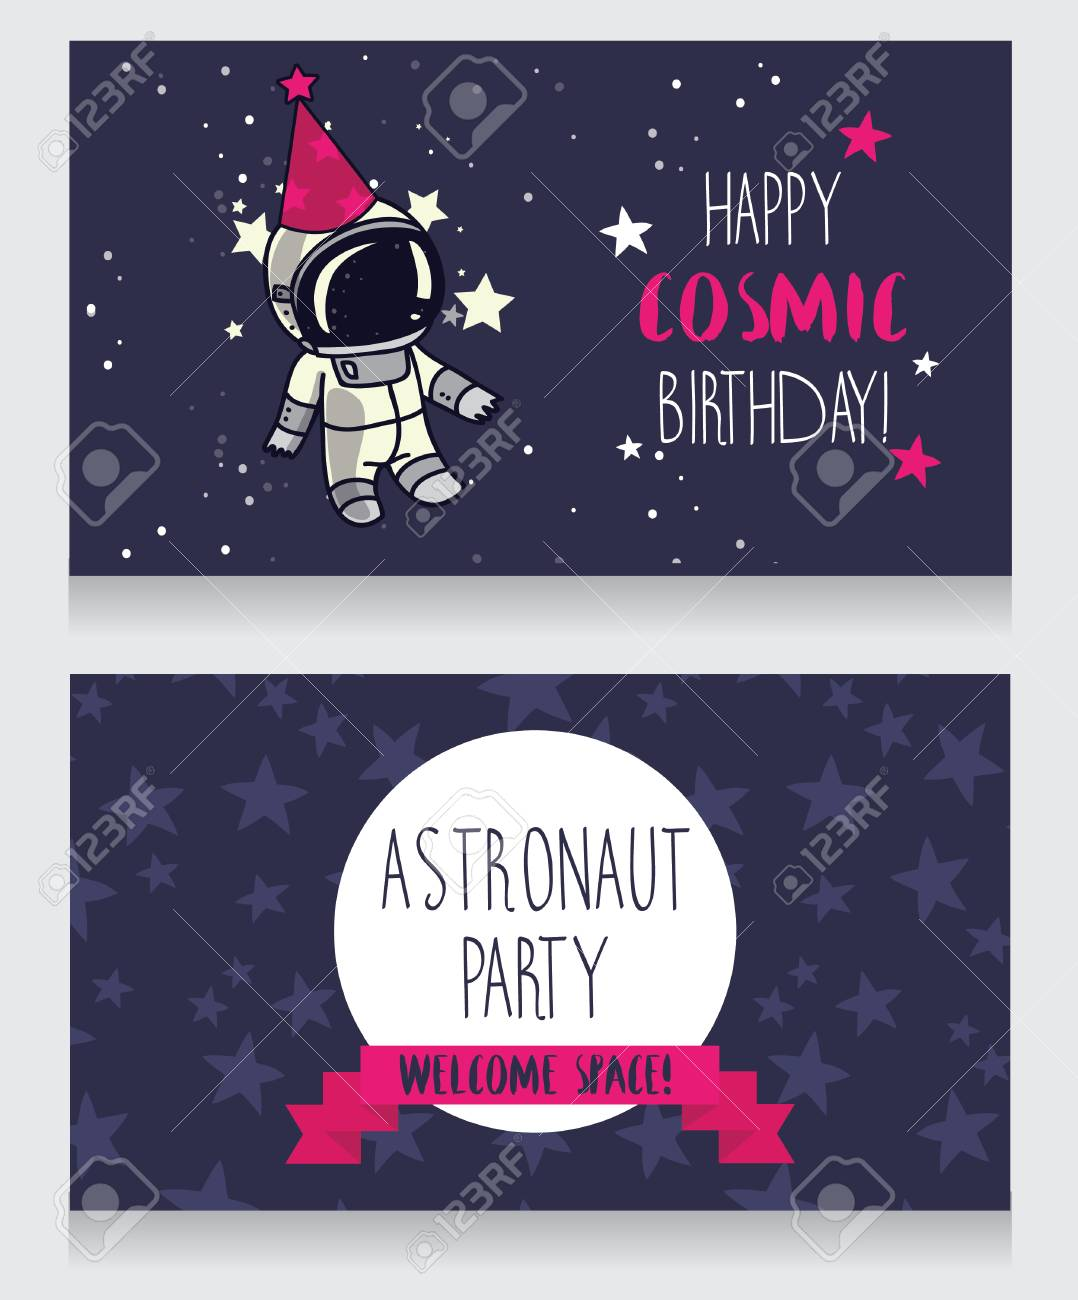 Cute Astronaut In Party Hat On Starry Background Funny Greeting